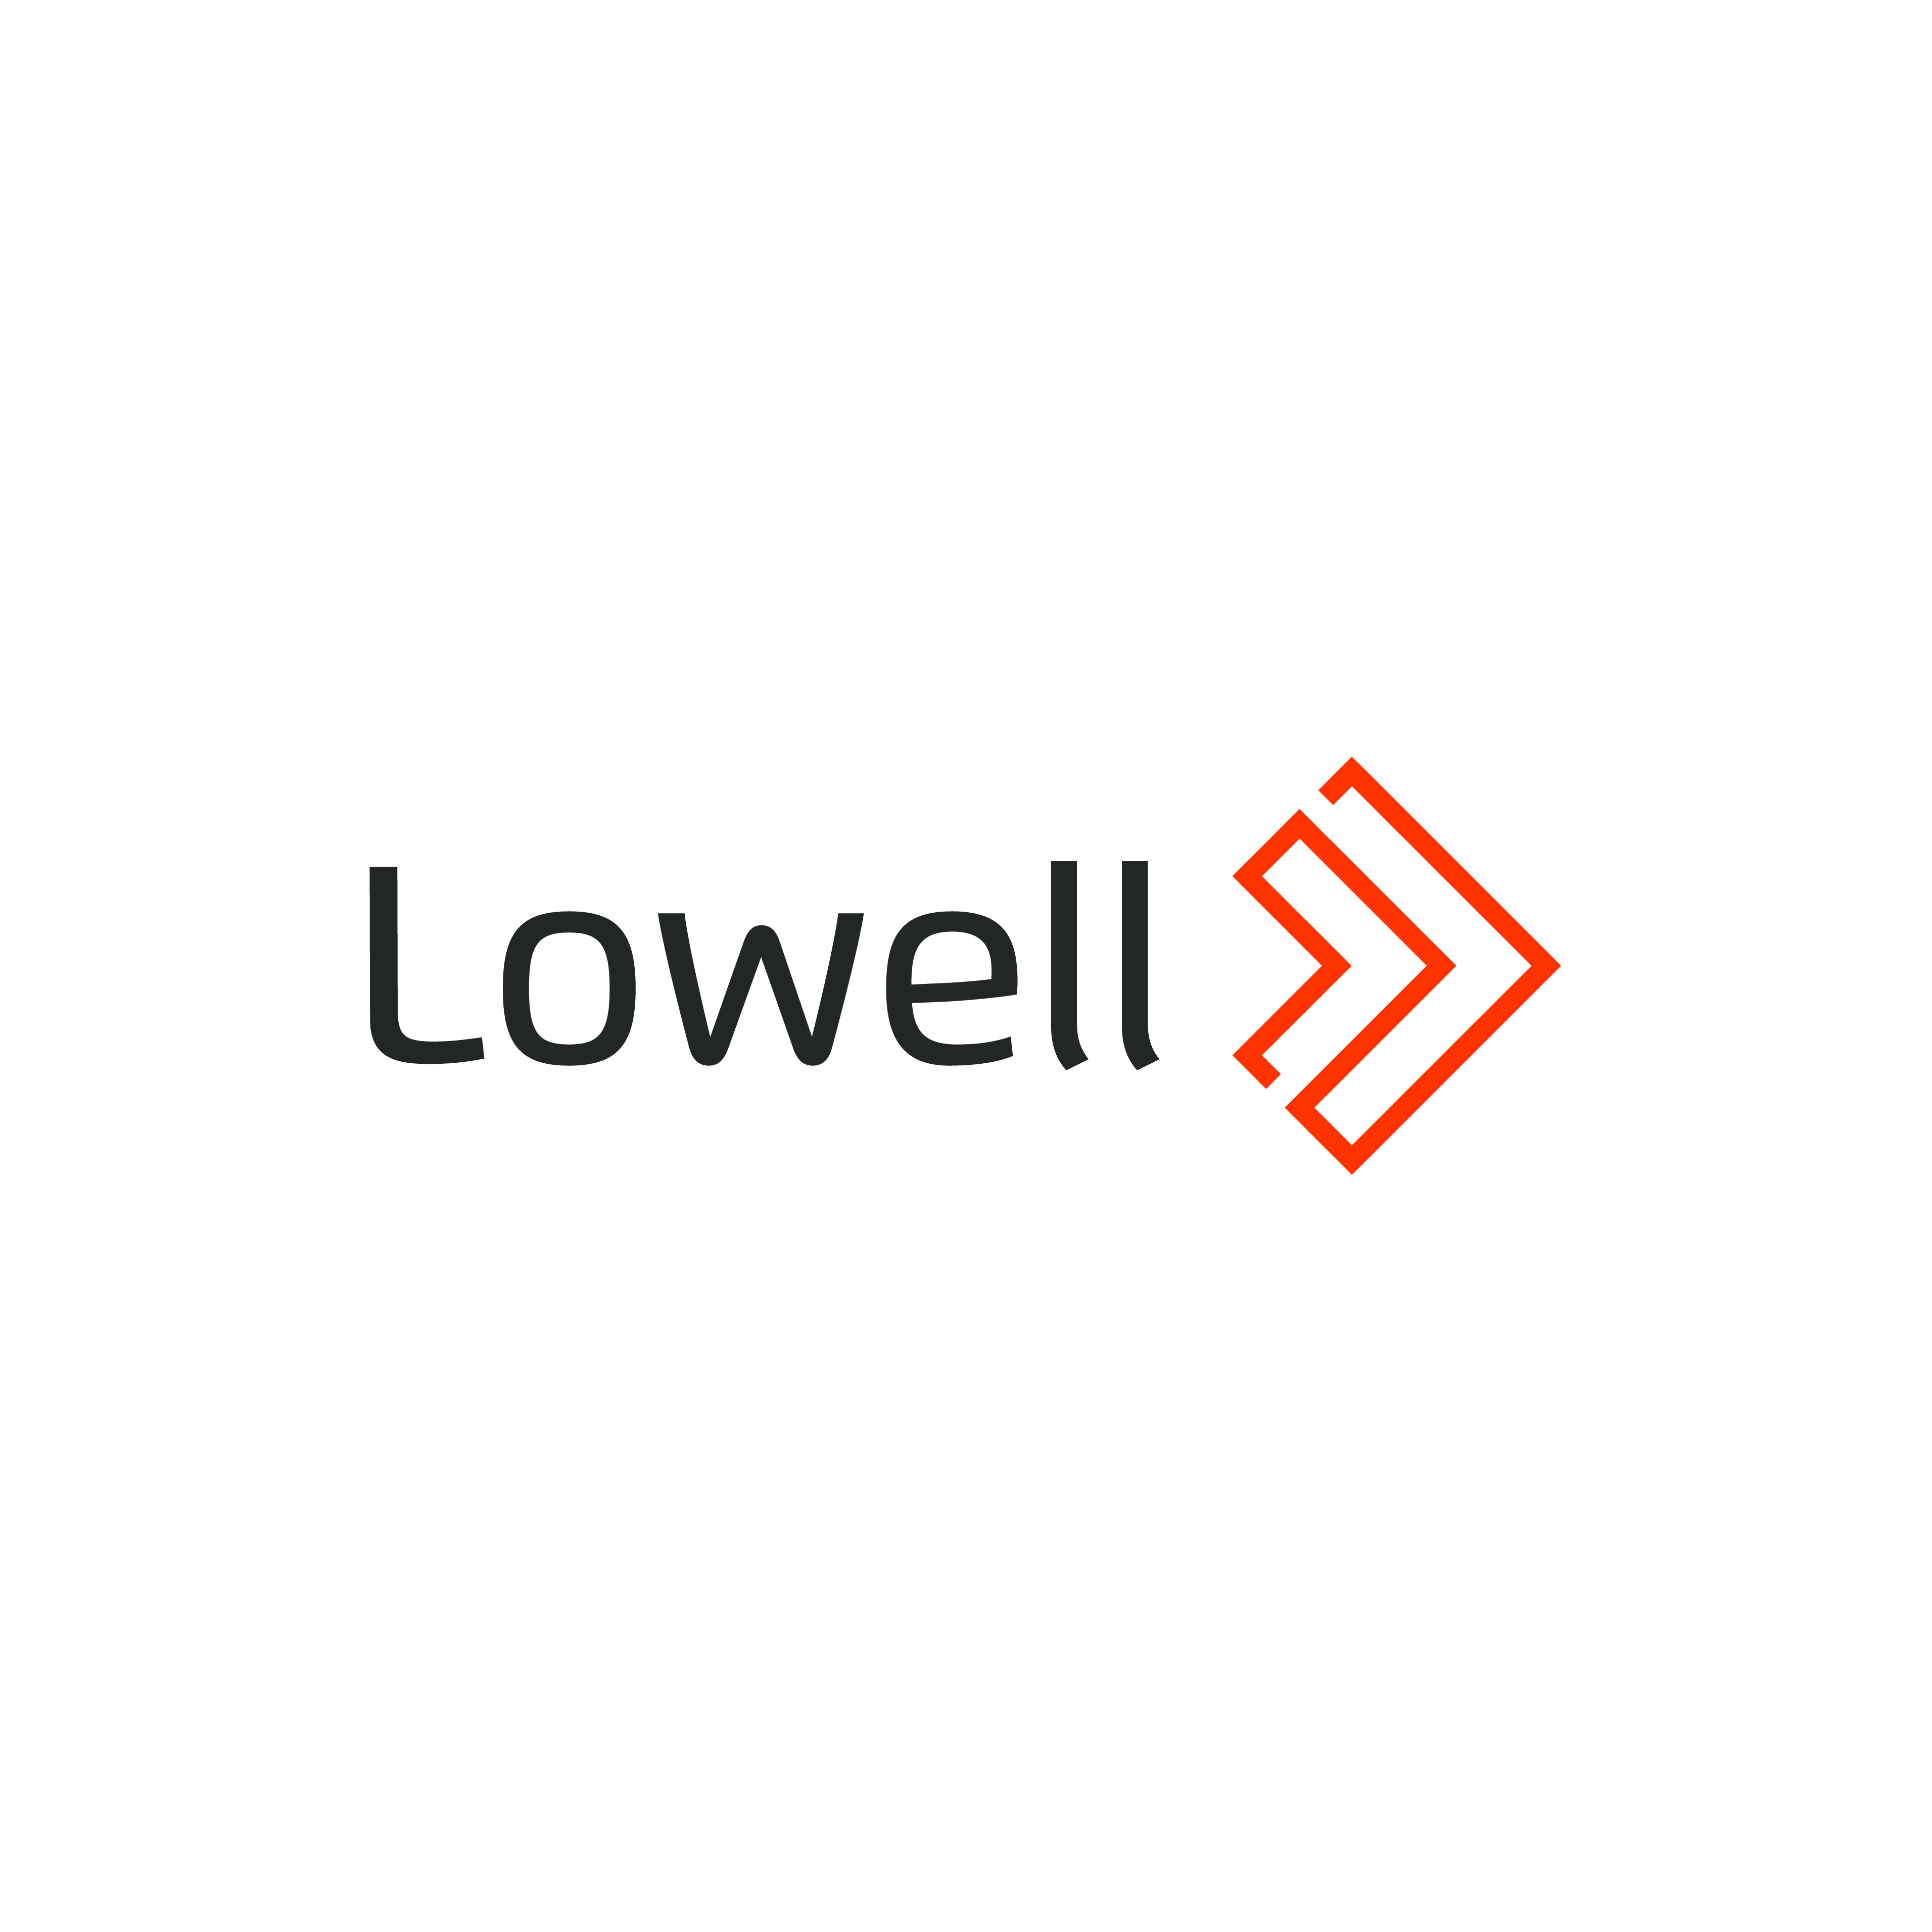 Lowell Financial Services GmbH